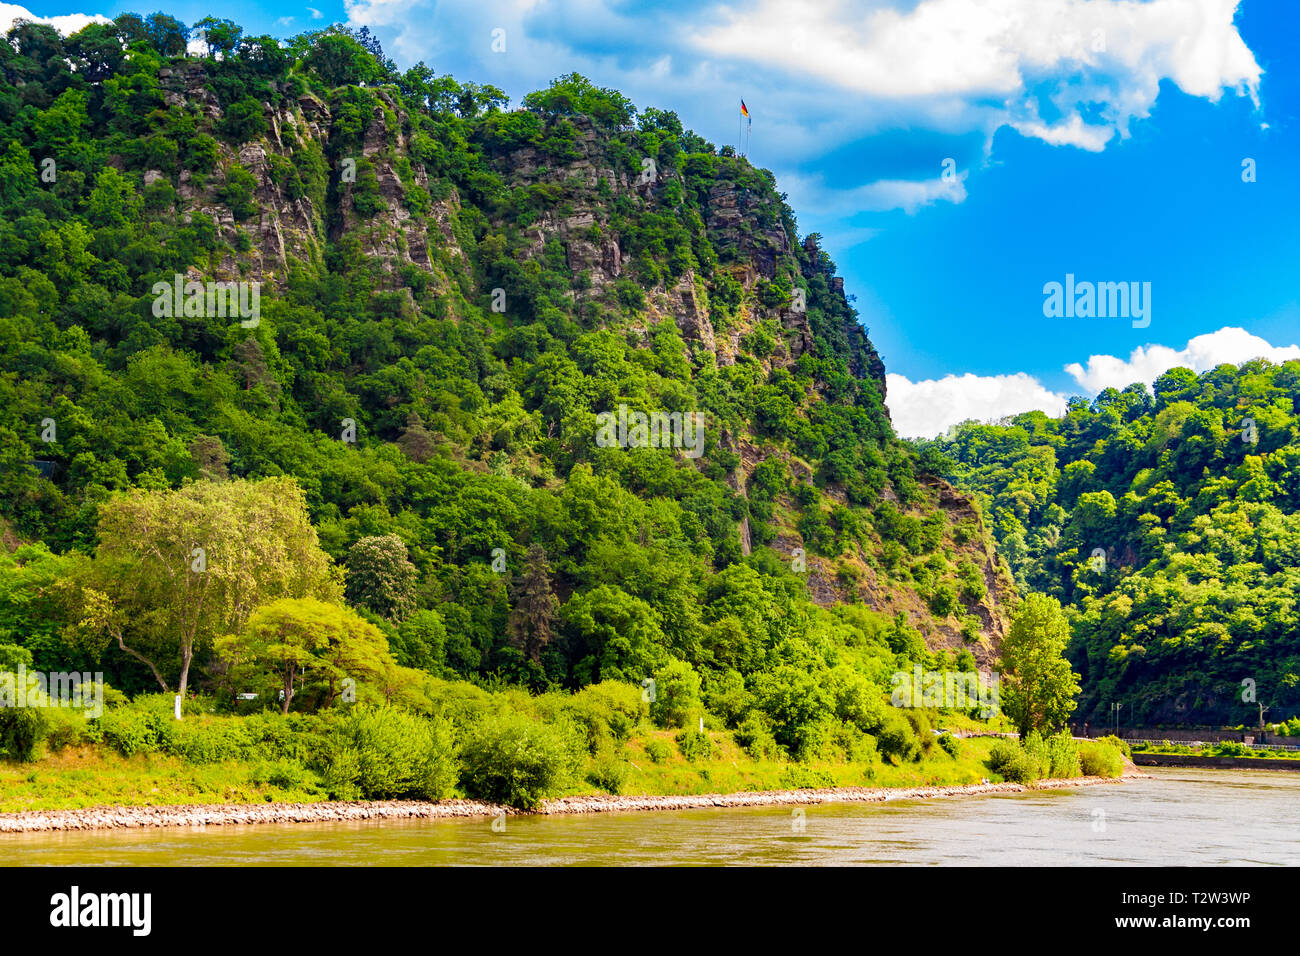 Fantastic landscape view of the steep Lorelei (Loreley in German) Rock on the riverbank of the River Rhine in the Rhine Gorge at Sankt Goarshausen in... Stock Photo